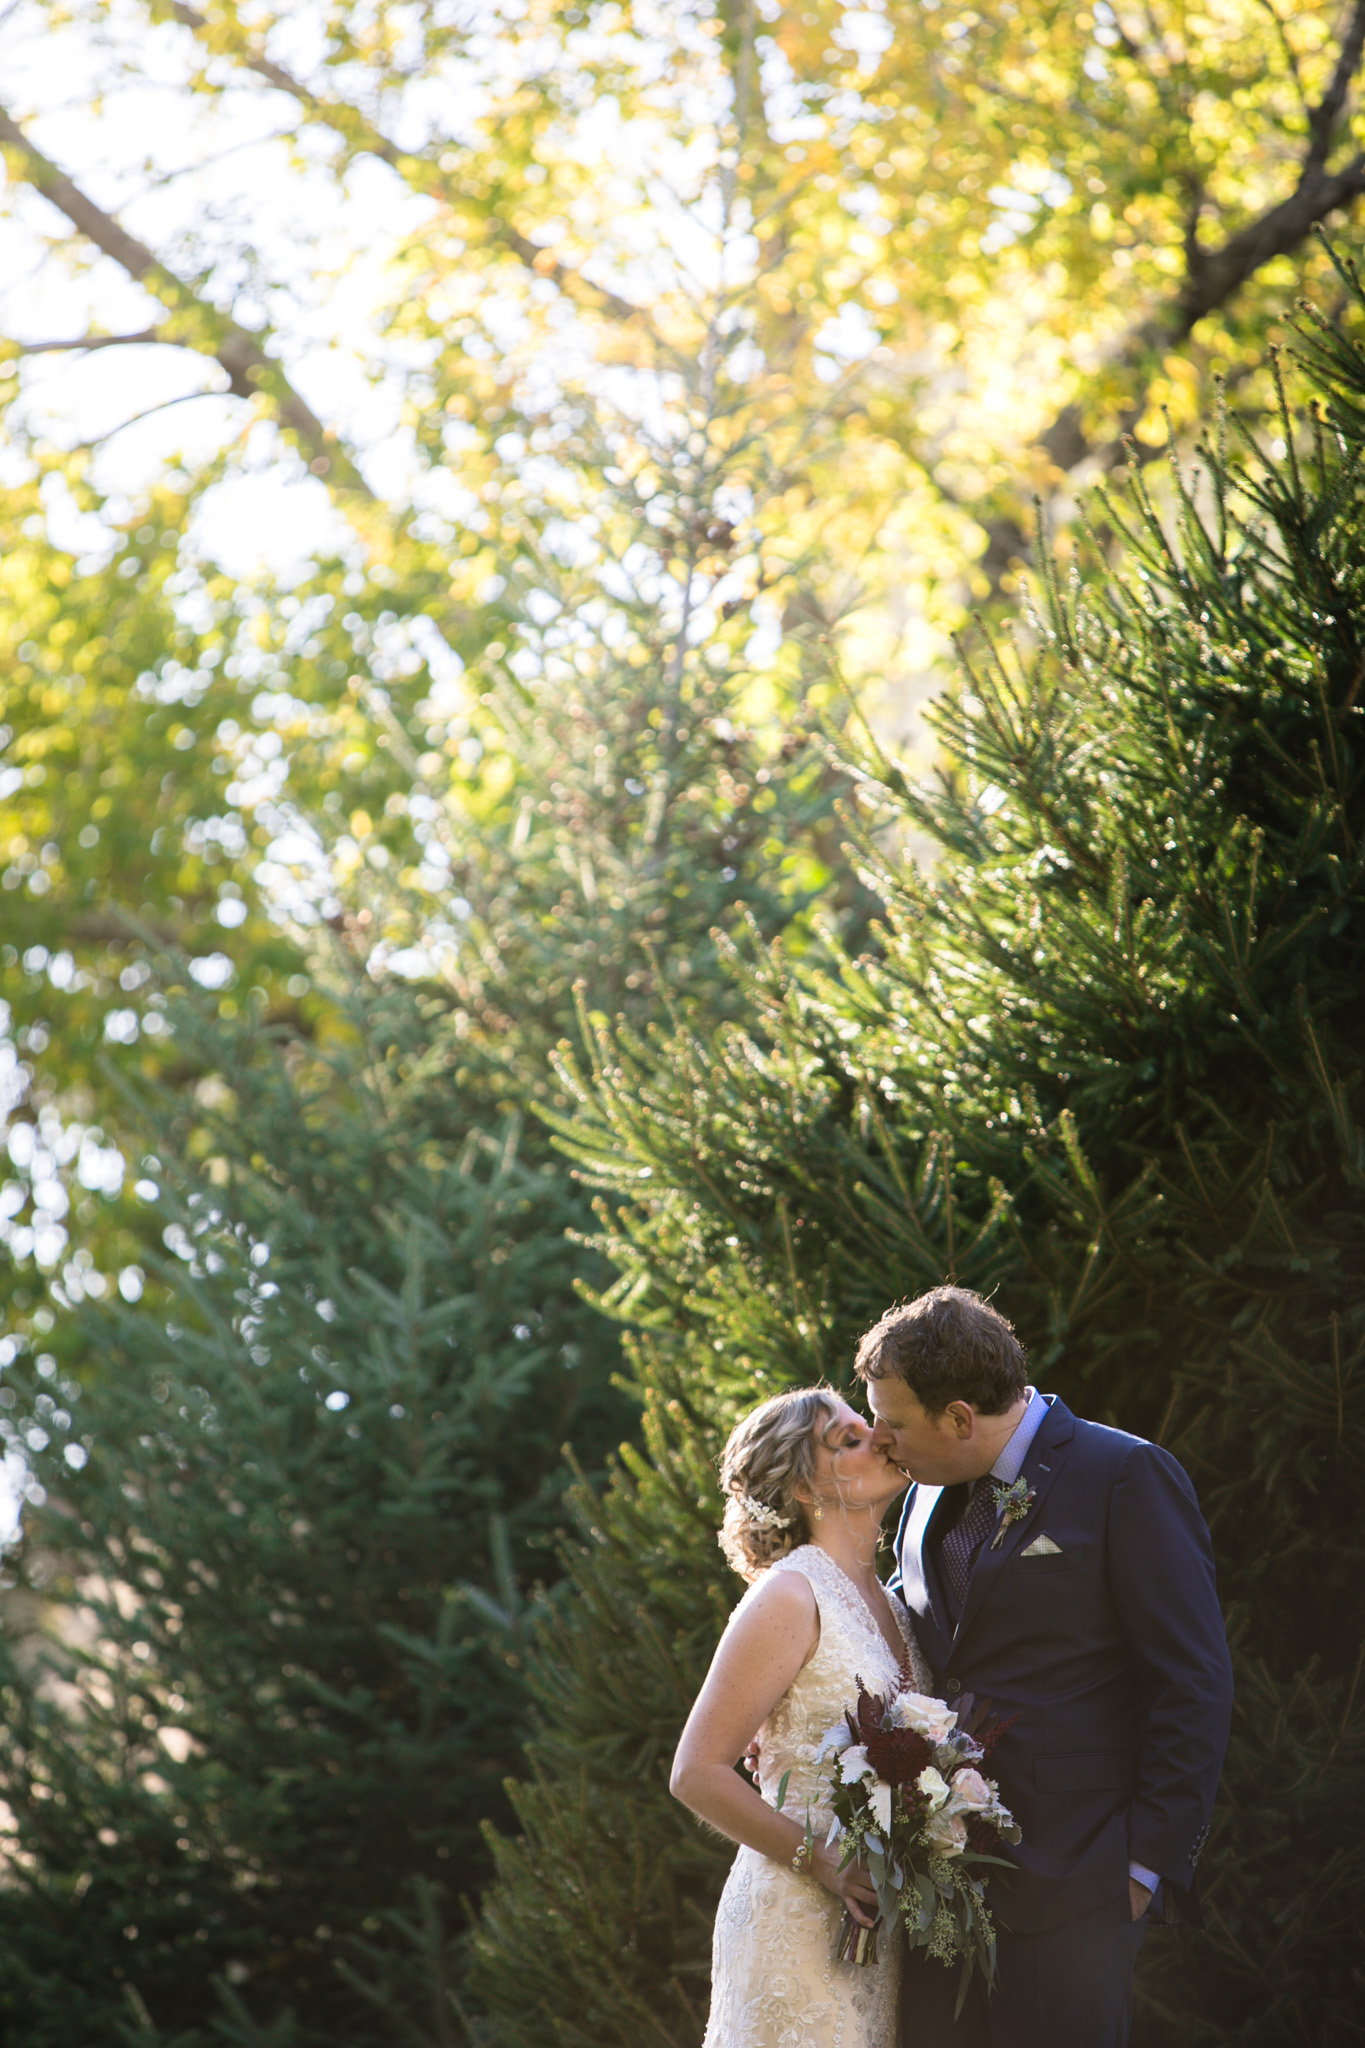 Bride and groom photos at Harrington Farm Wedding, lush greenery and stunning light